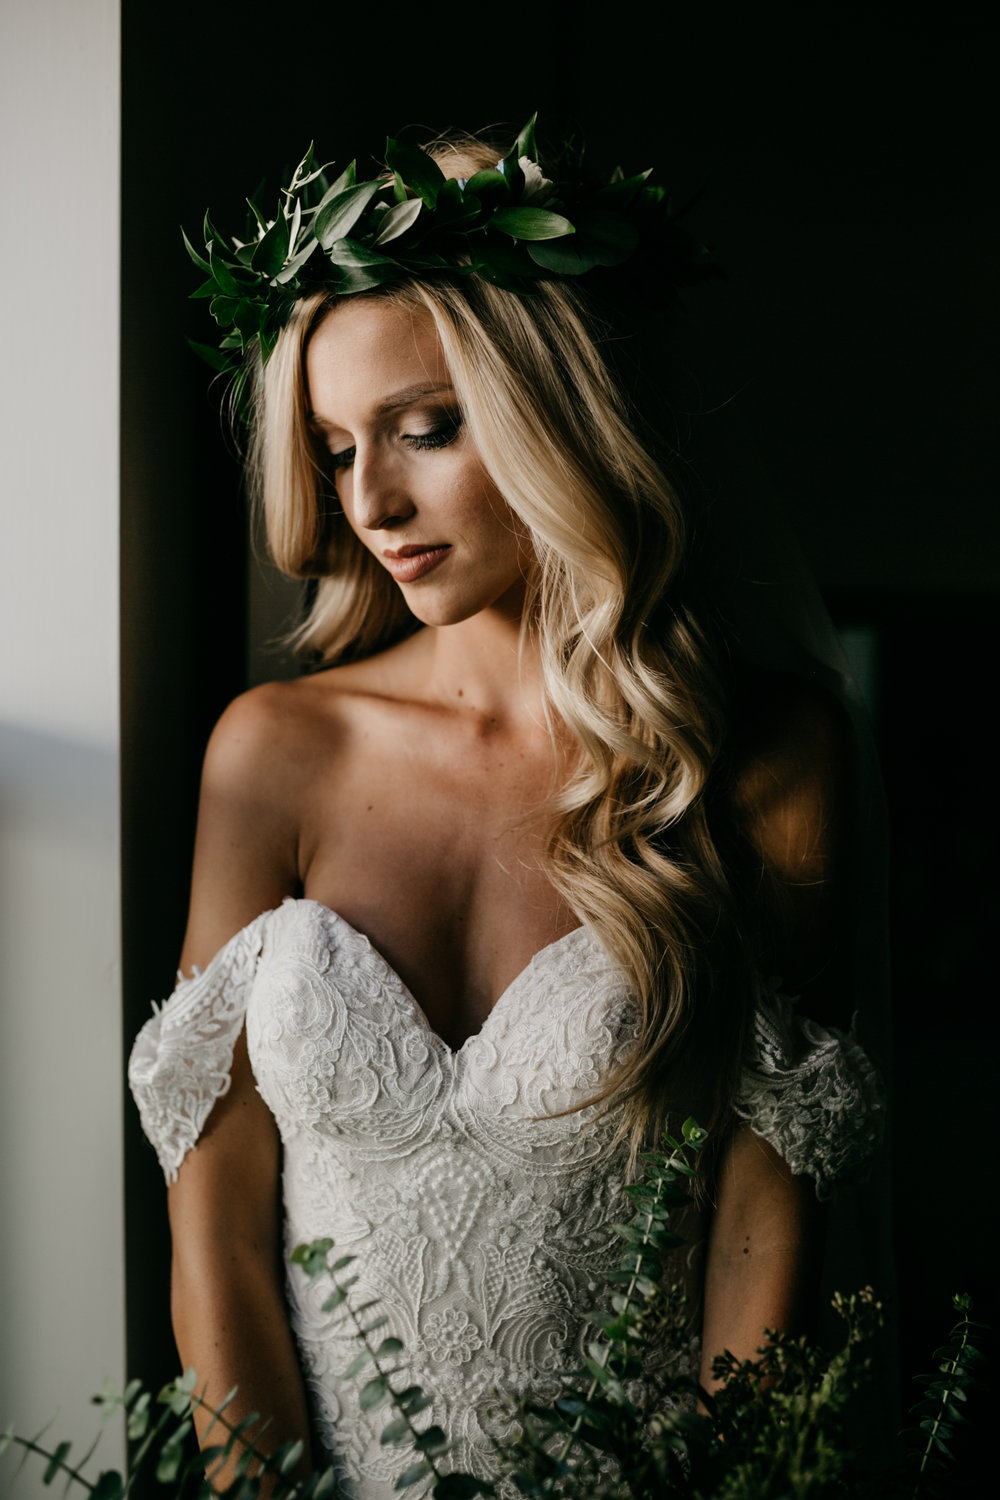 All You Need is Love and Doughnuts!  - with Tremaine Ranch - Arizona Wedding & Event, Vintage, Furniture, Tableware, & Specialty Rentals in Phoenix, Tucson, Flagstaff, Sedona, Tempe, Chandler, Mesa, Gilbert, Prescott, Payson10.jpg